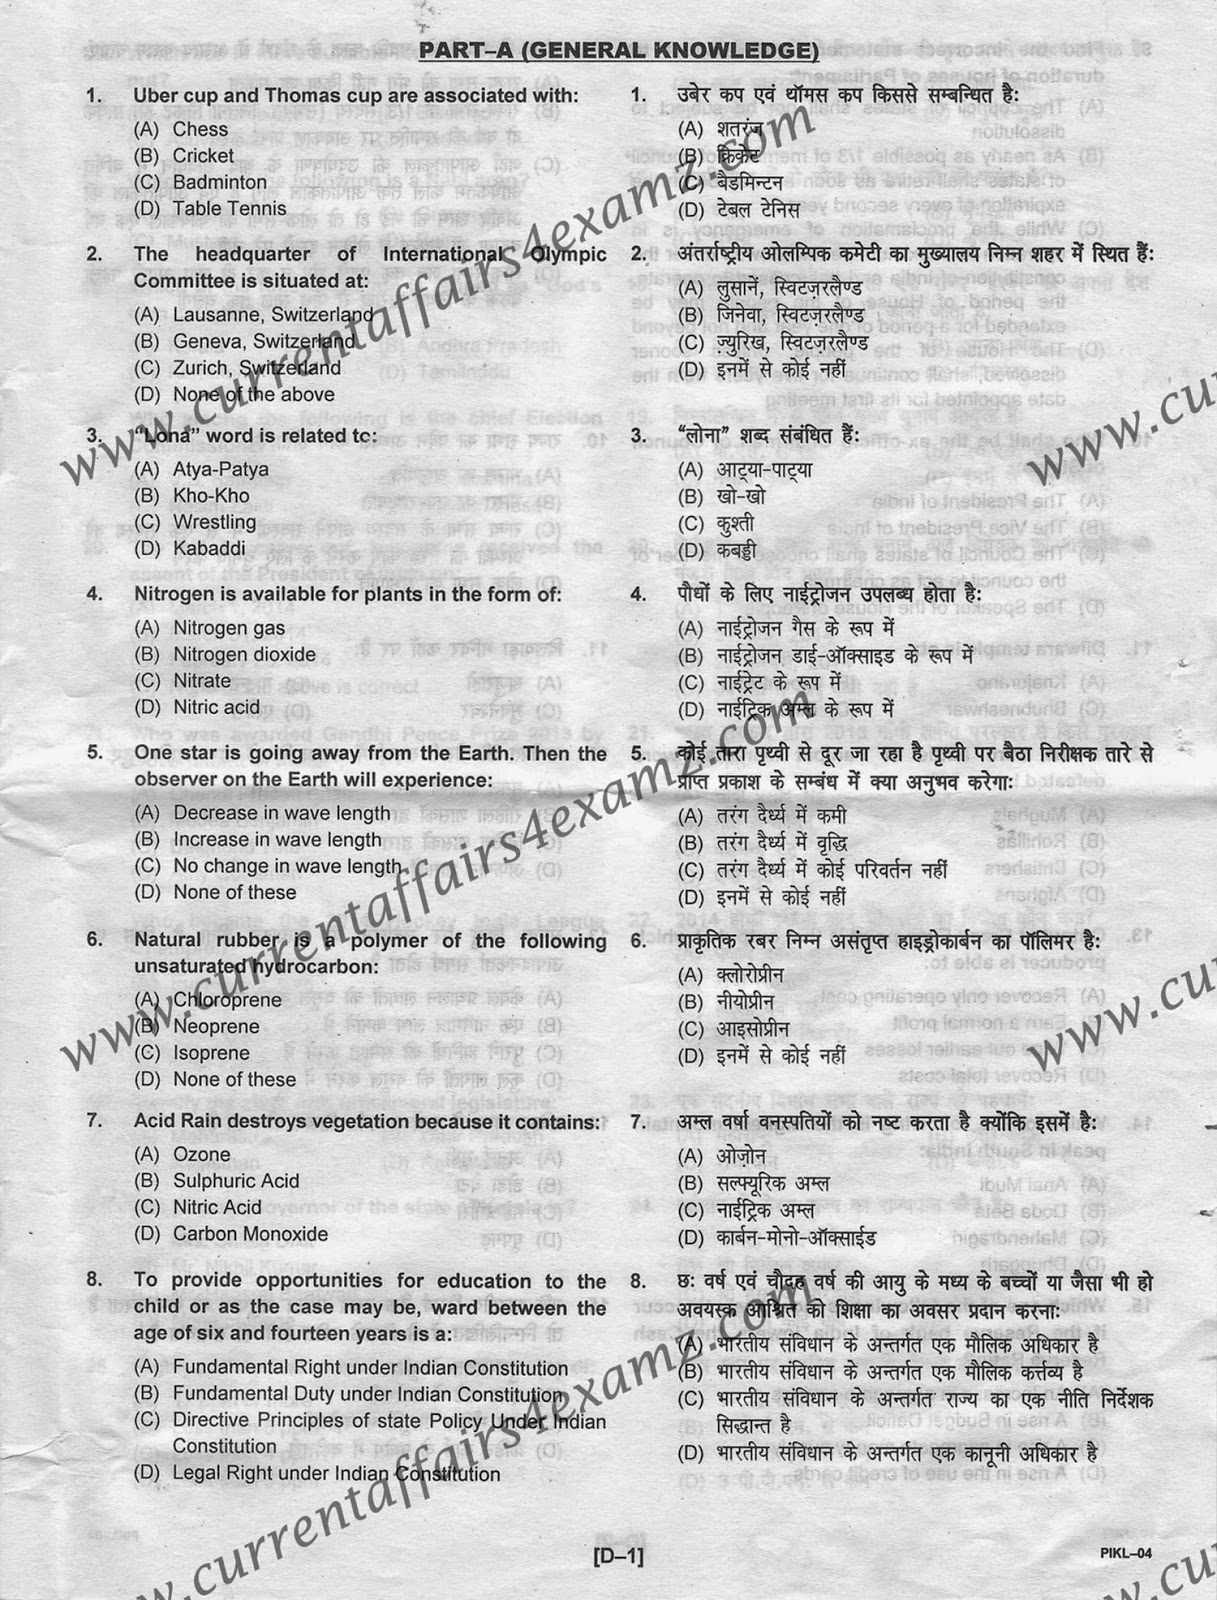 Kerala circle postalsorting assistant exam 2014 question paper pdf kerala circle postalsorting assistant exam 2014 question paper pdf download malvernweather Gallery